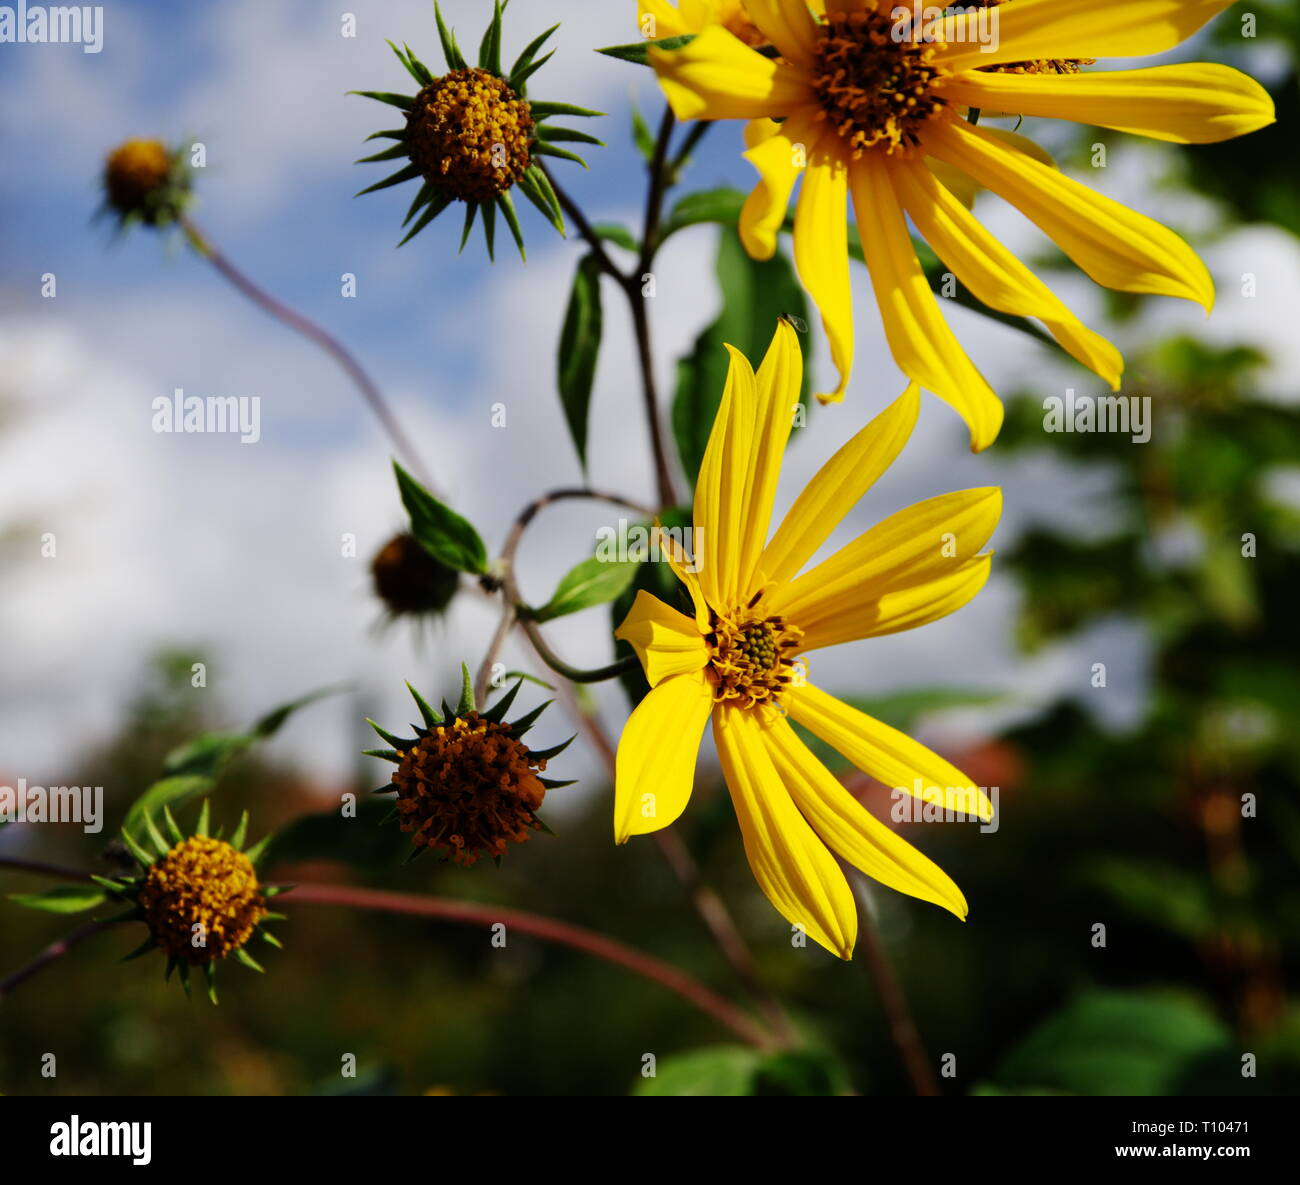 yellow blooming sun hats in front of blue sky - Stock Image